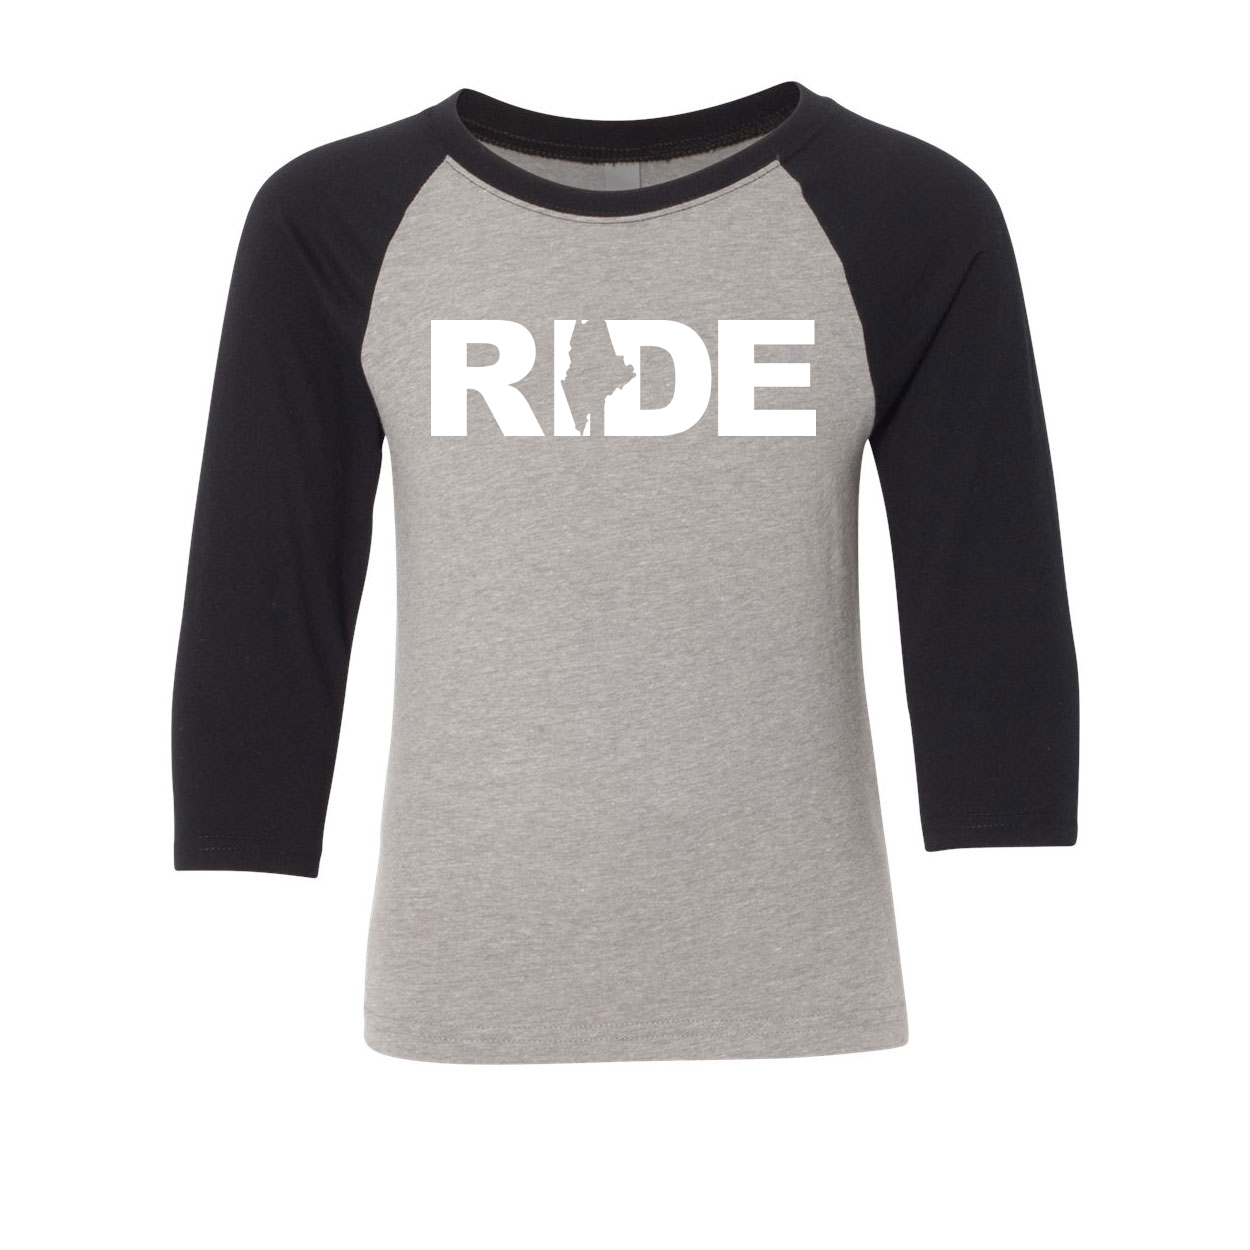 Ride Maine Classic Youth Premium Raglan Shirt Gray/Black (White Logo)